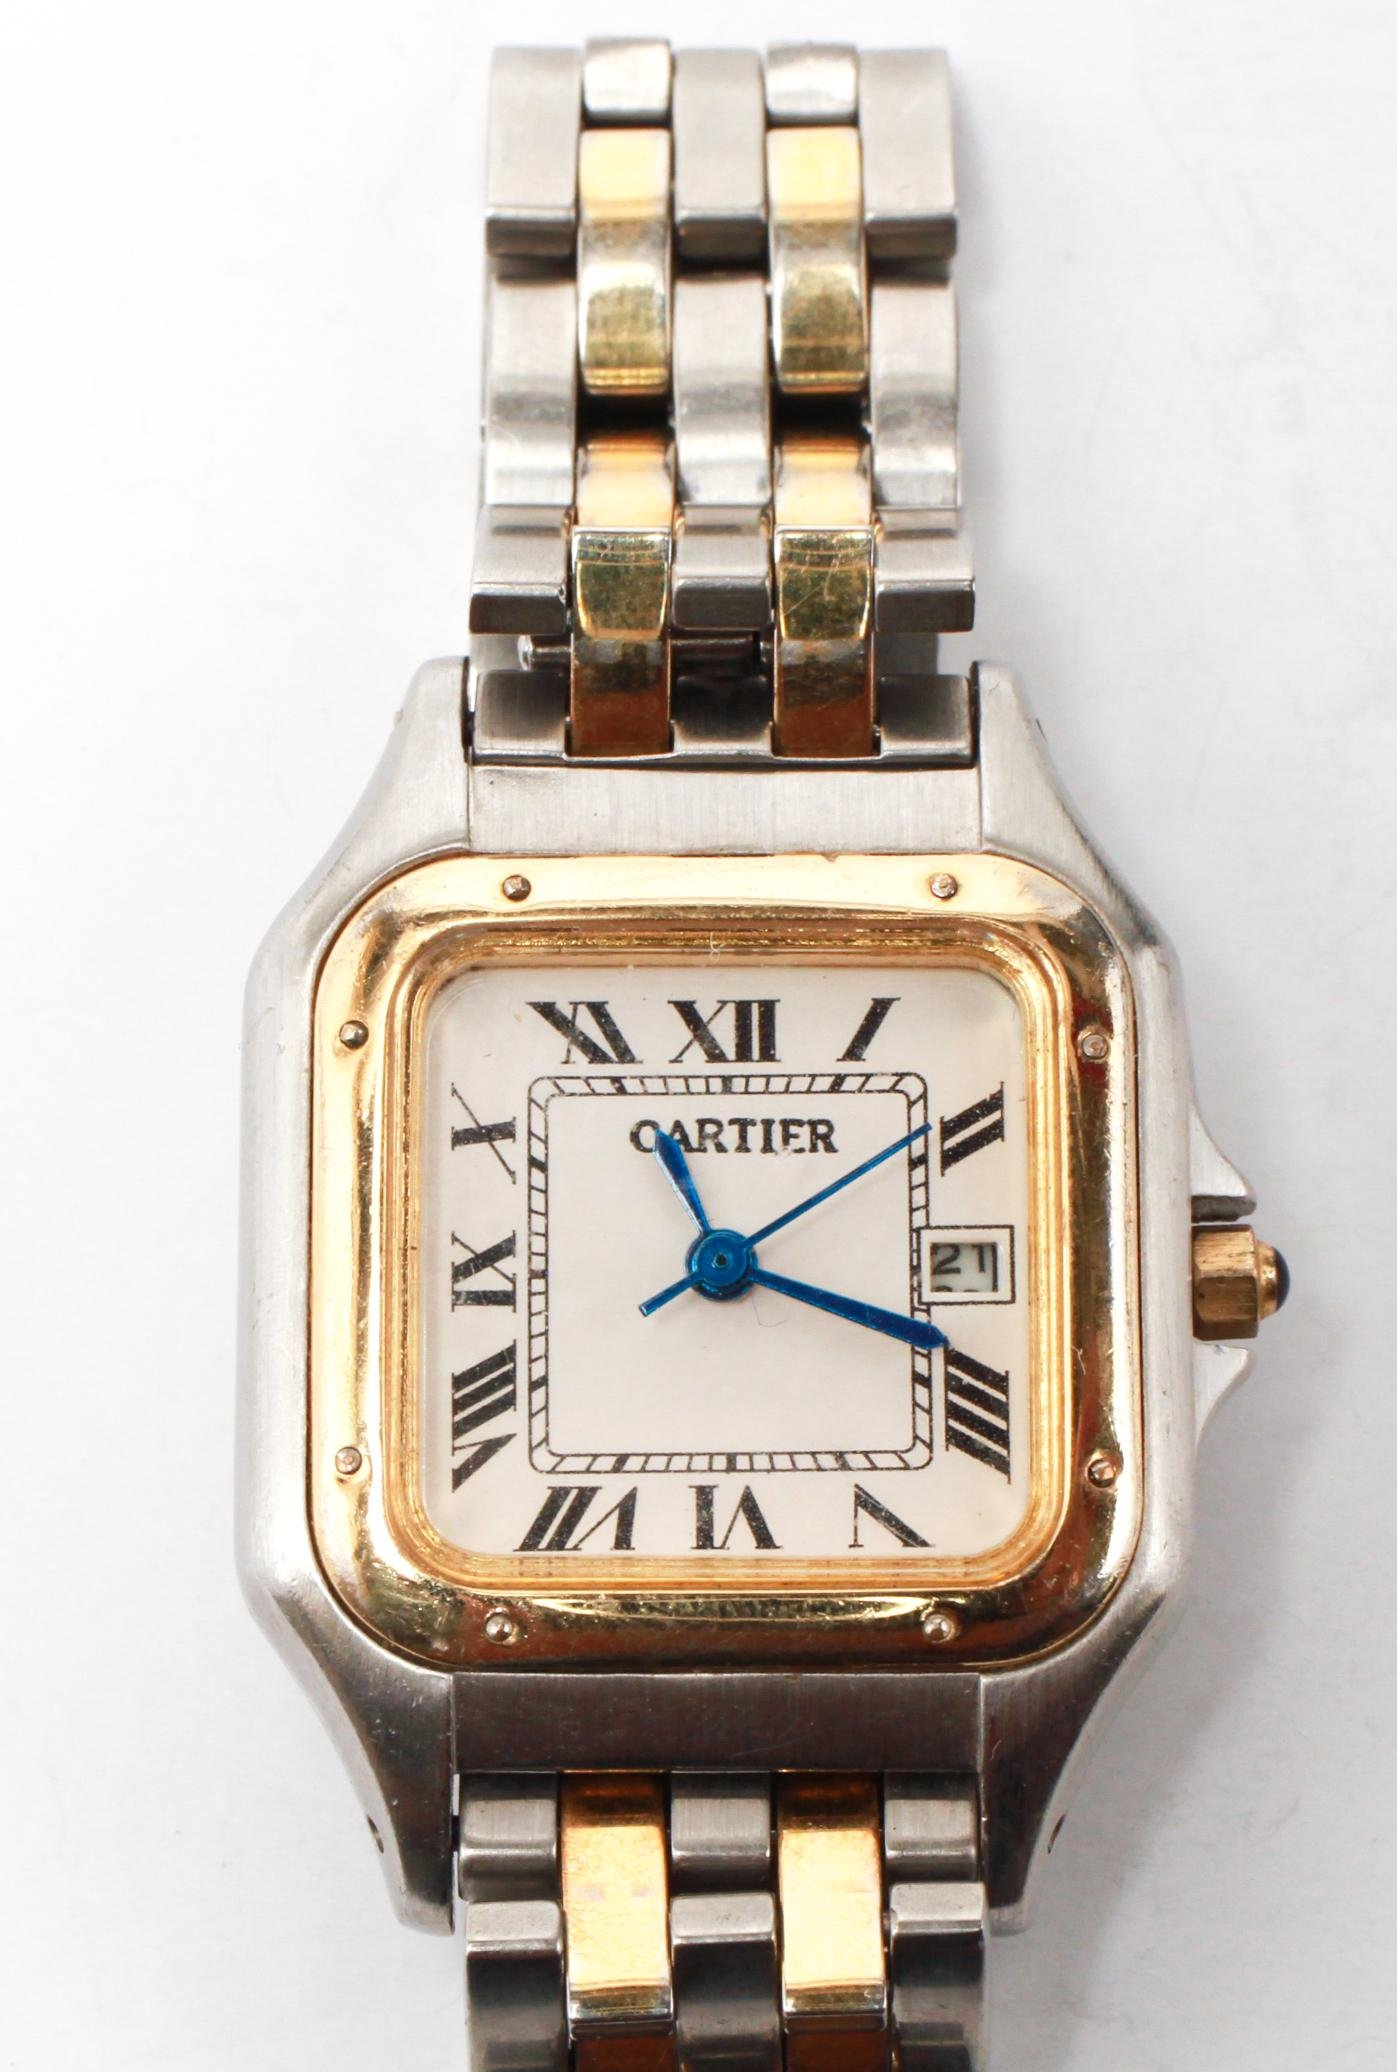 Cartier 2-Tone Gold-Plated & Stainless Steel Watch